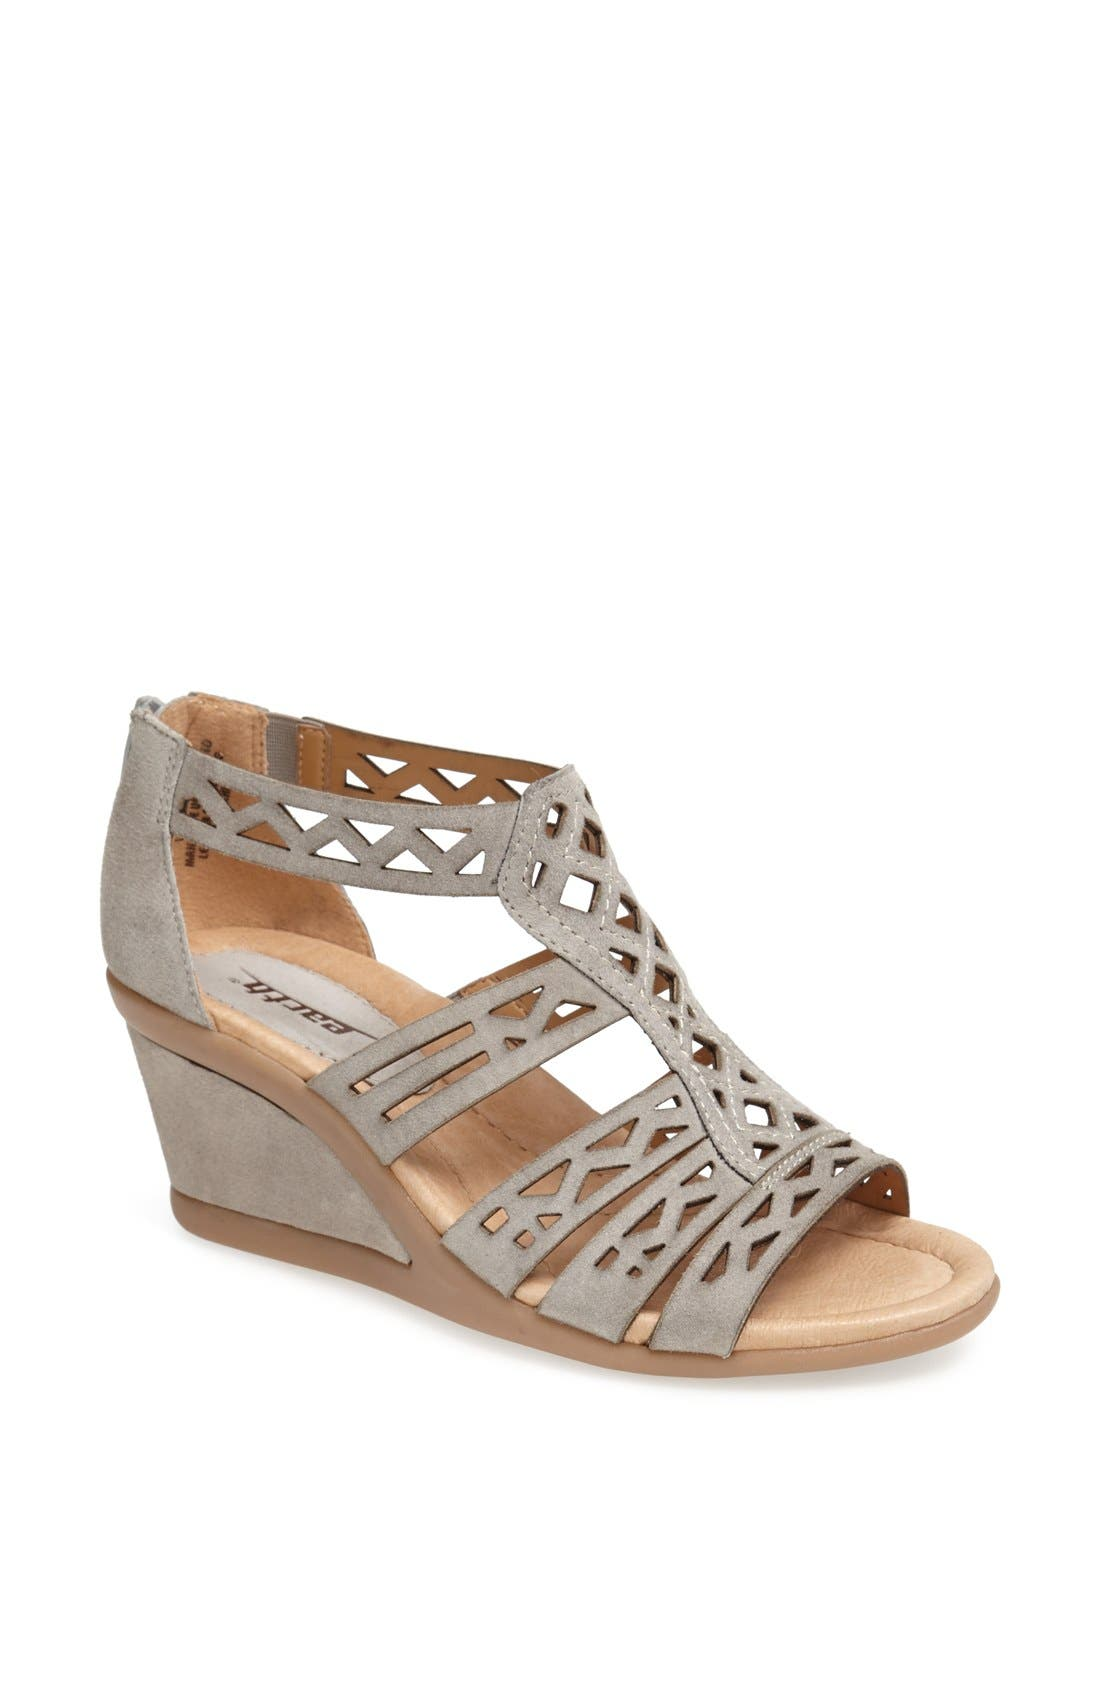 Main Image - Earth® 'Petal' Wedge Sandal